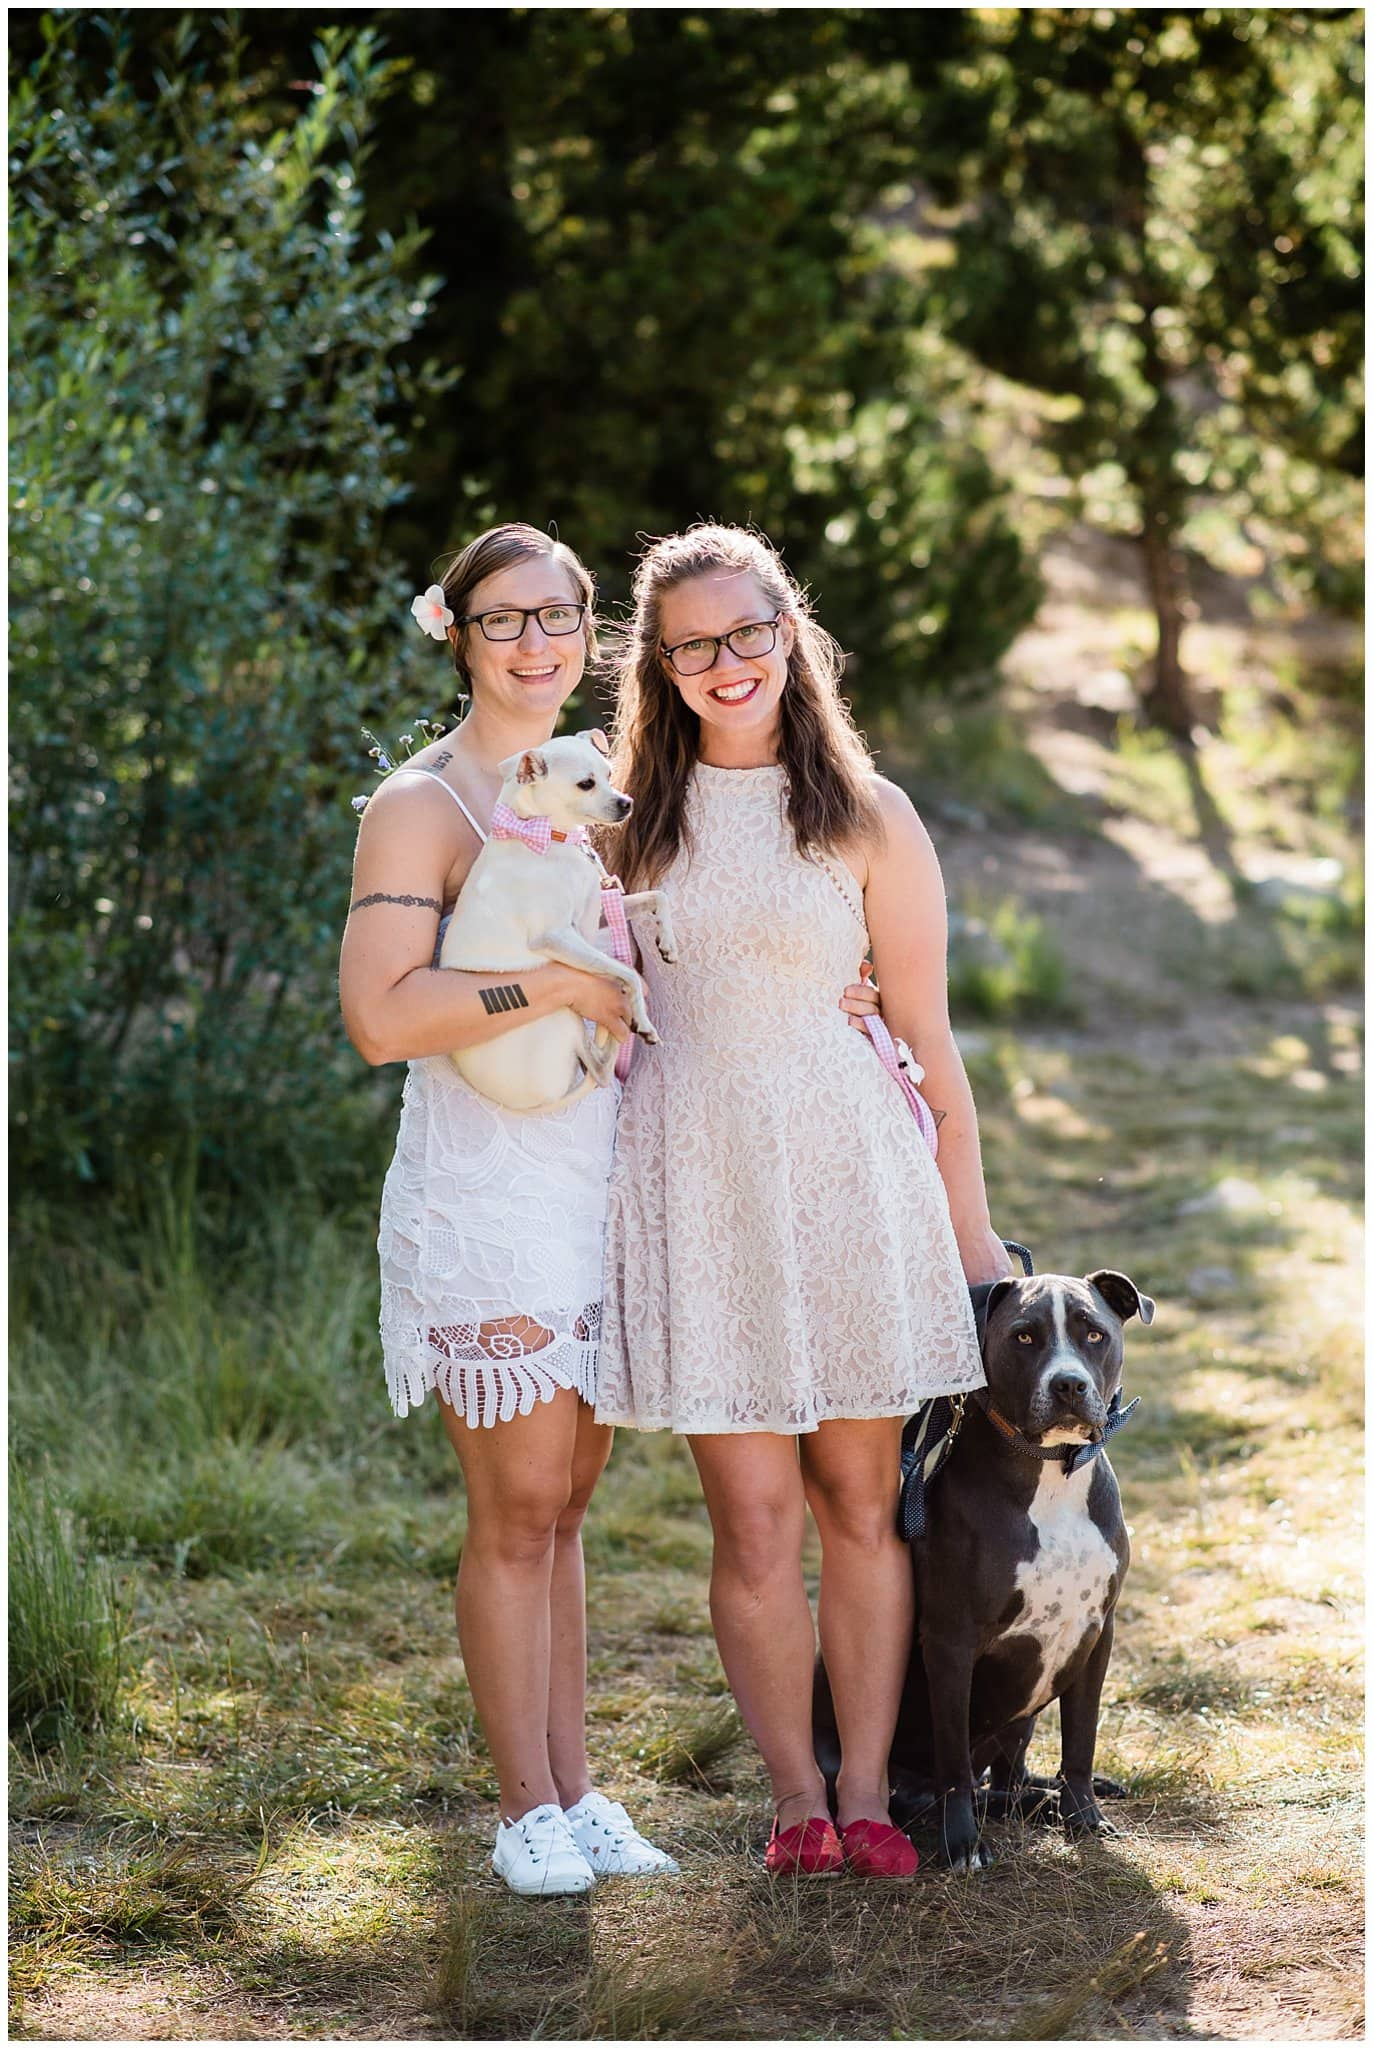 family photo with dogs at wedding photo